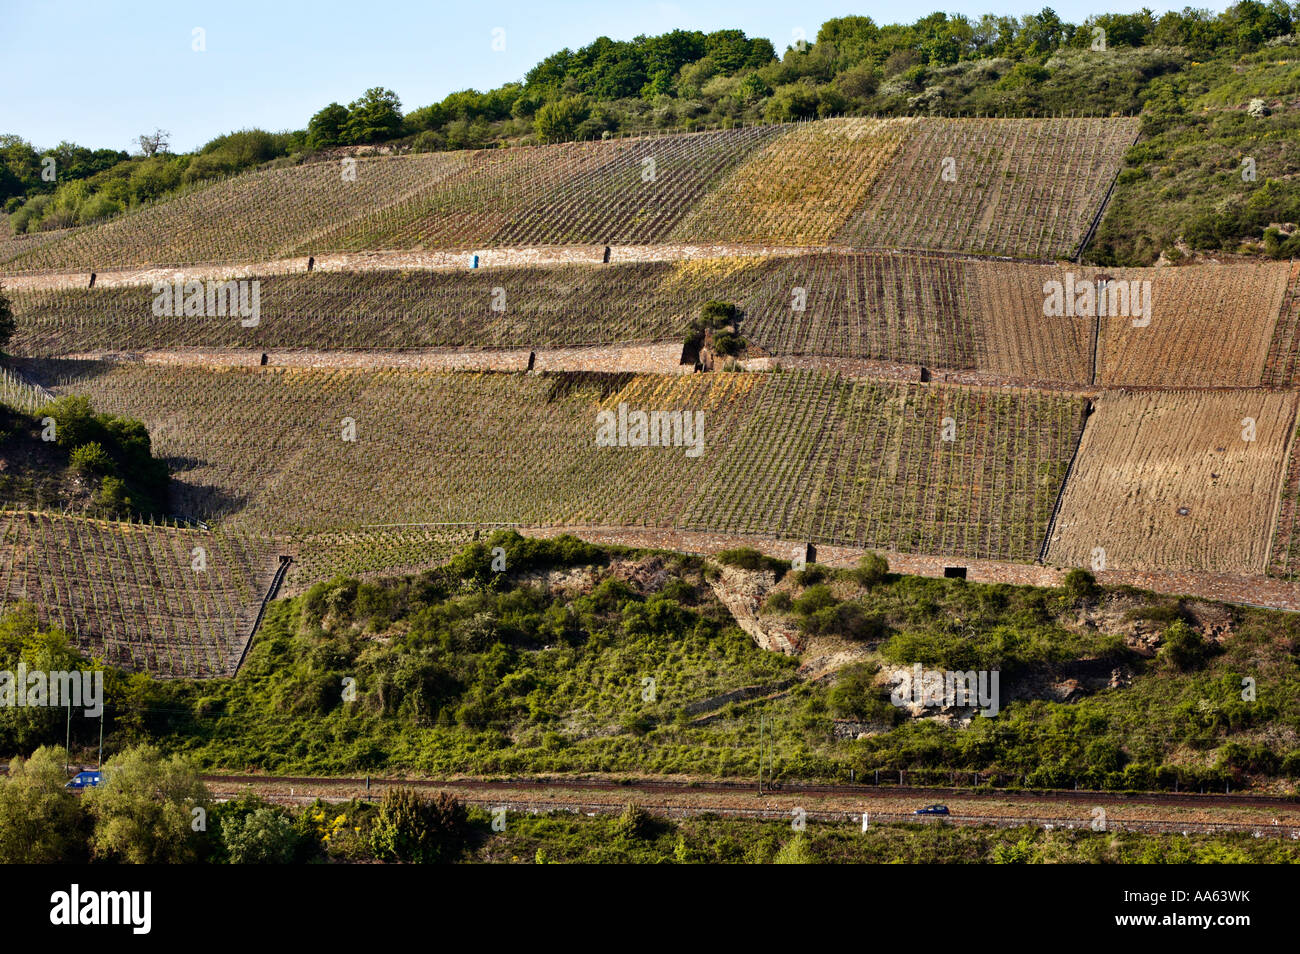 Vineyard , Germany - on the banks of the Rhine in the Upper Middle Rhine Valley, Germany in spring time - Stock Image